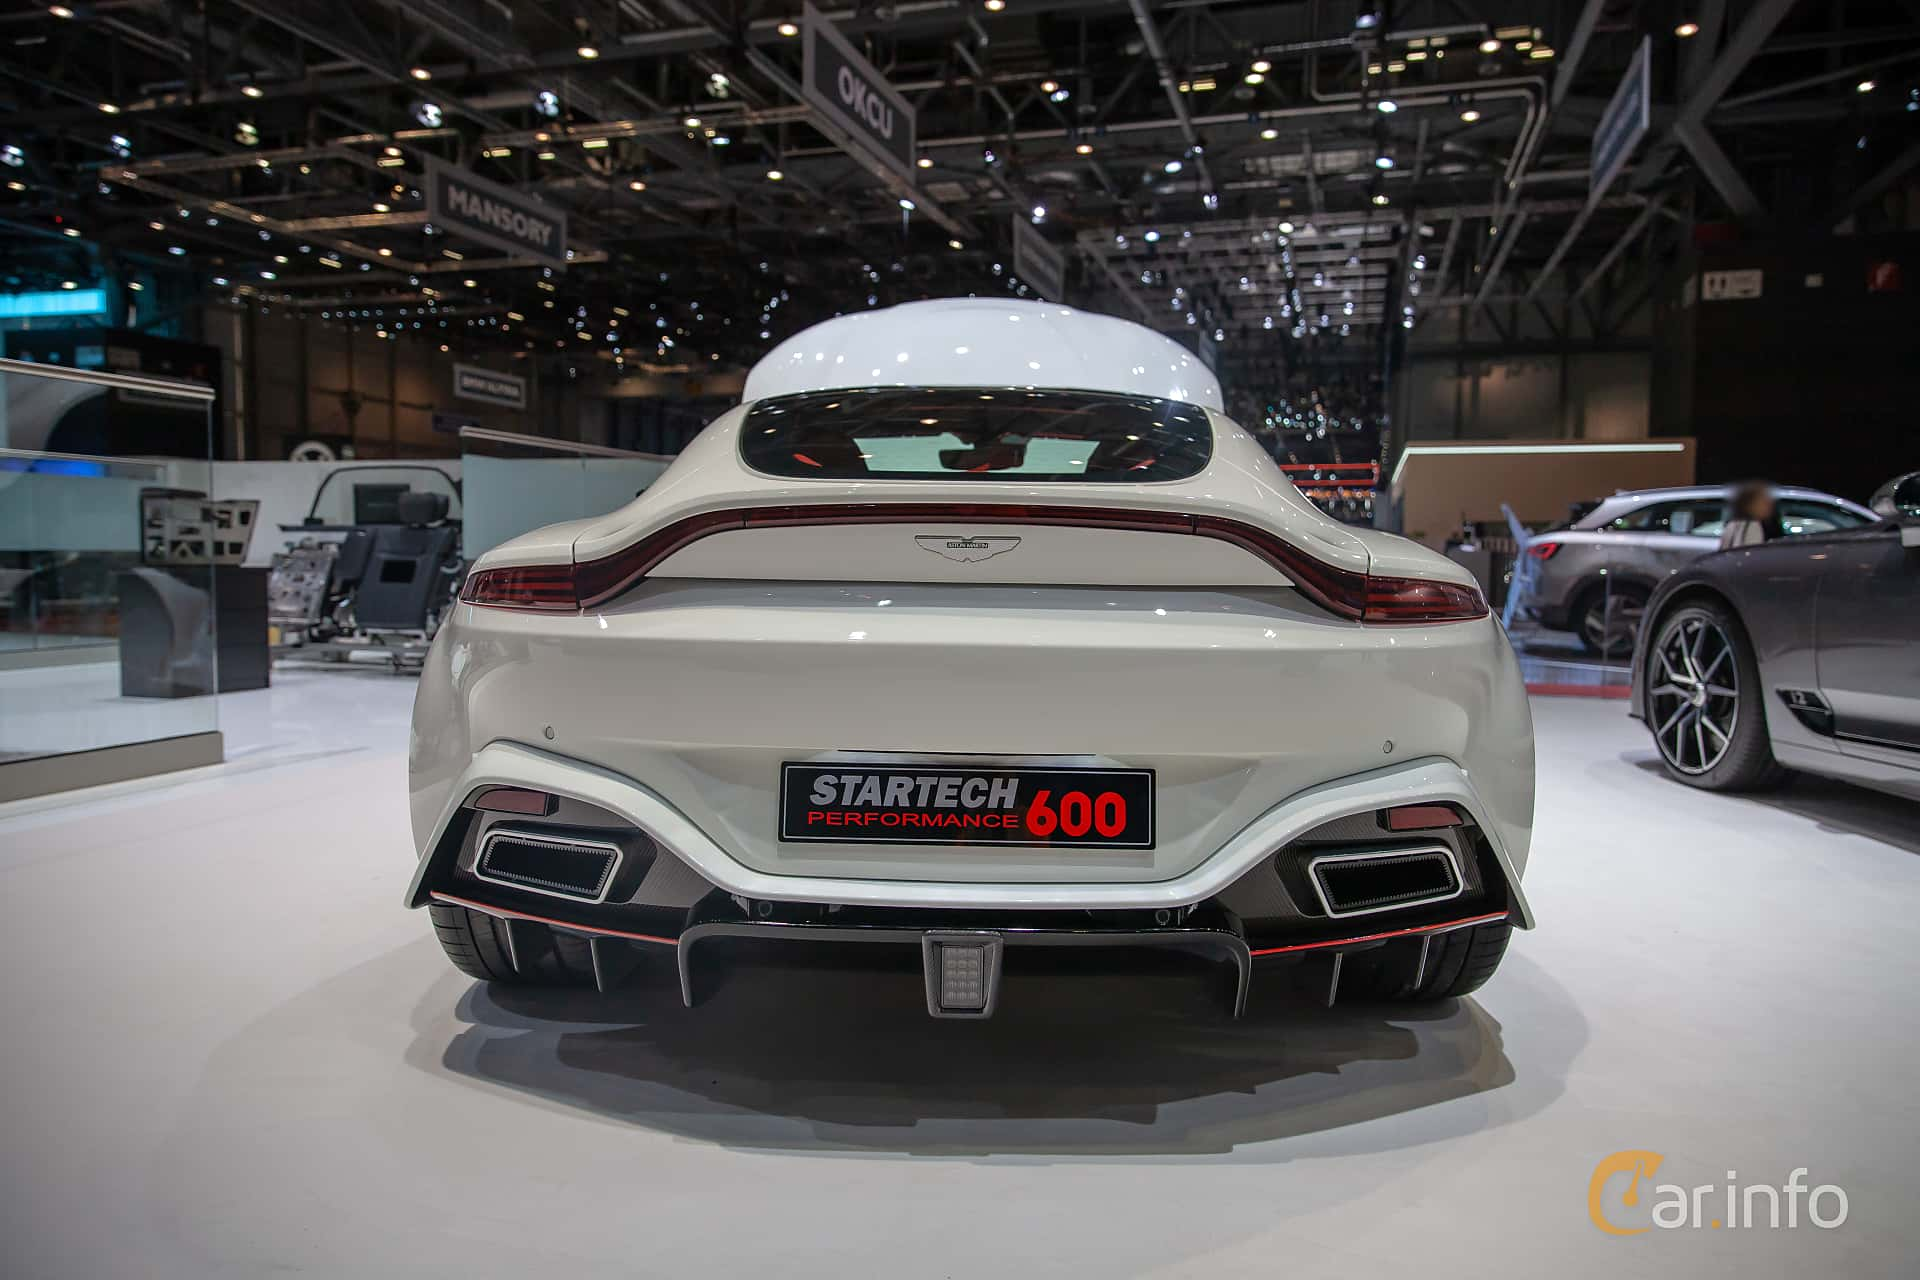 STARTECH Vantage PowerXtra SP600 4.0 V8 Automatic, 600hp, 2019 at Geneva Motor Show 2019